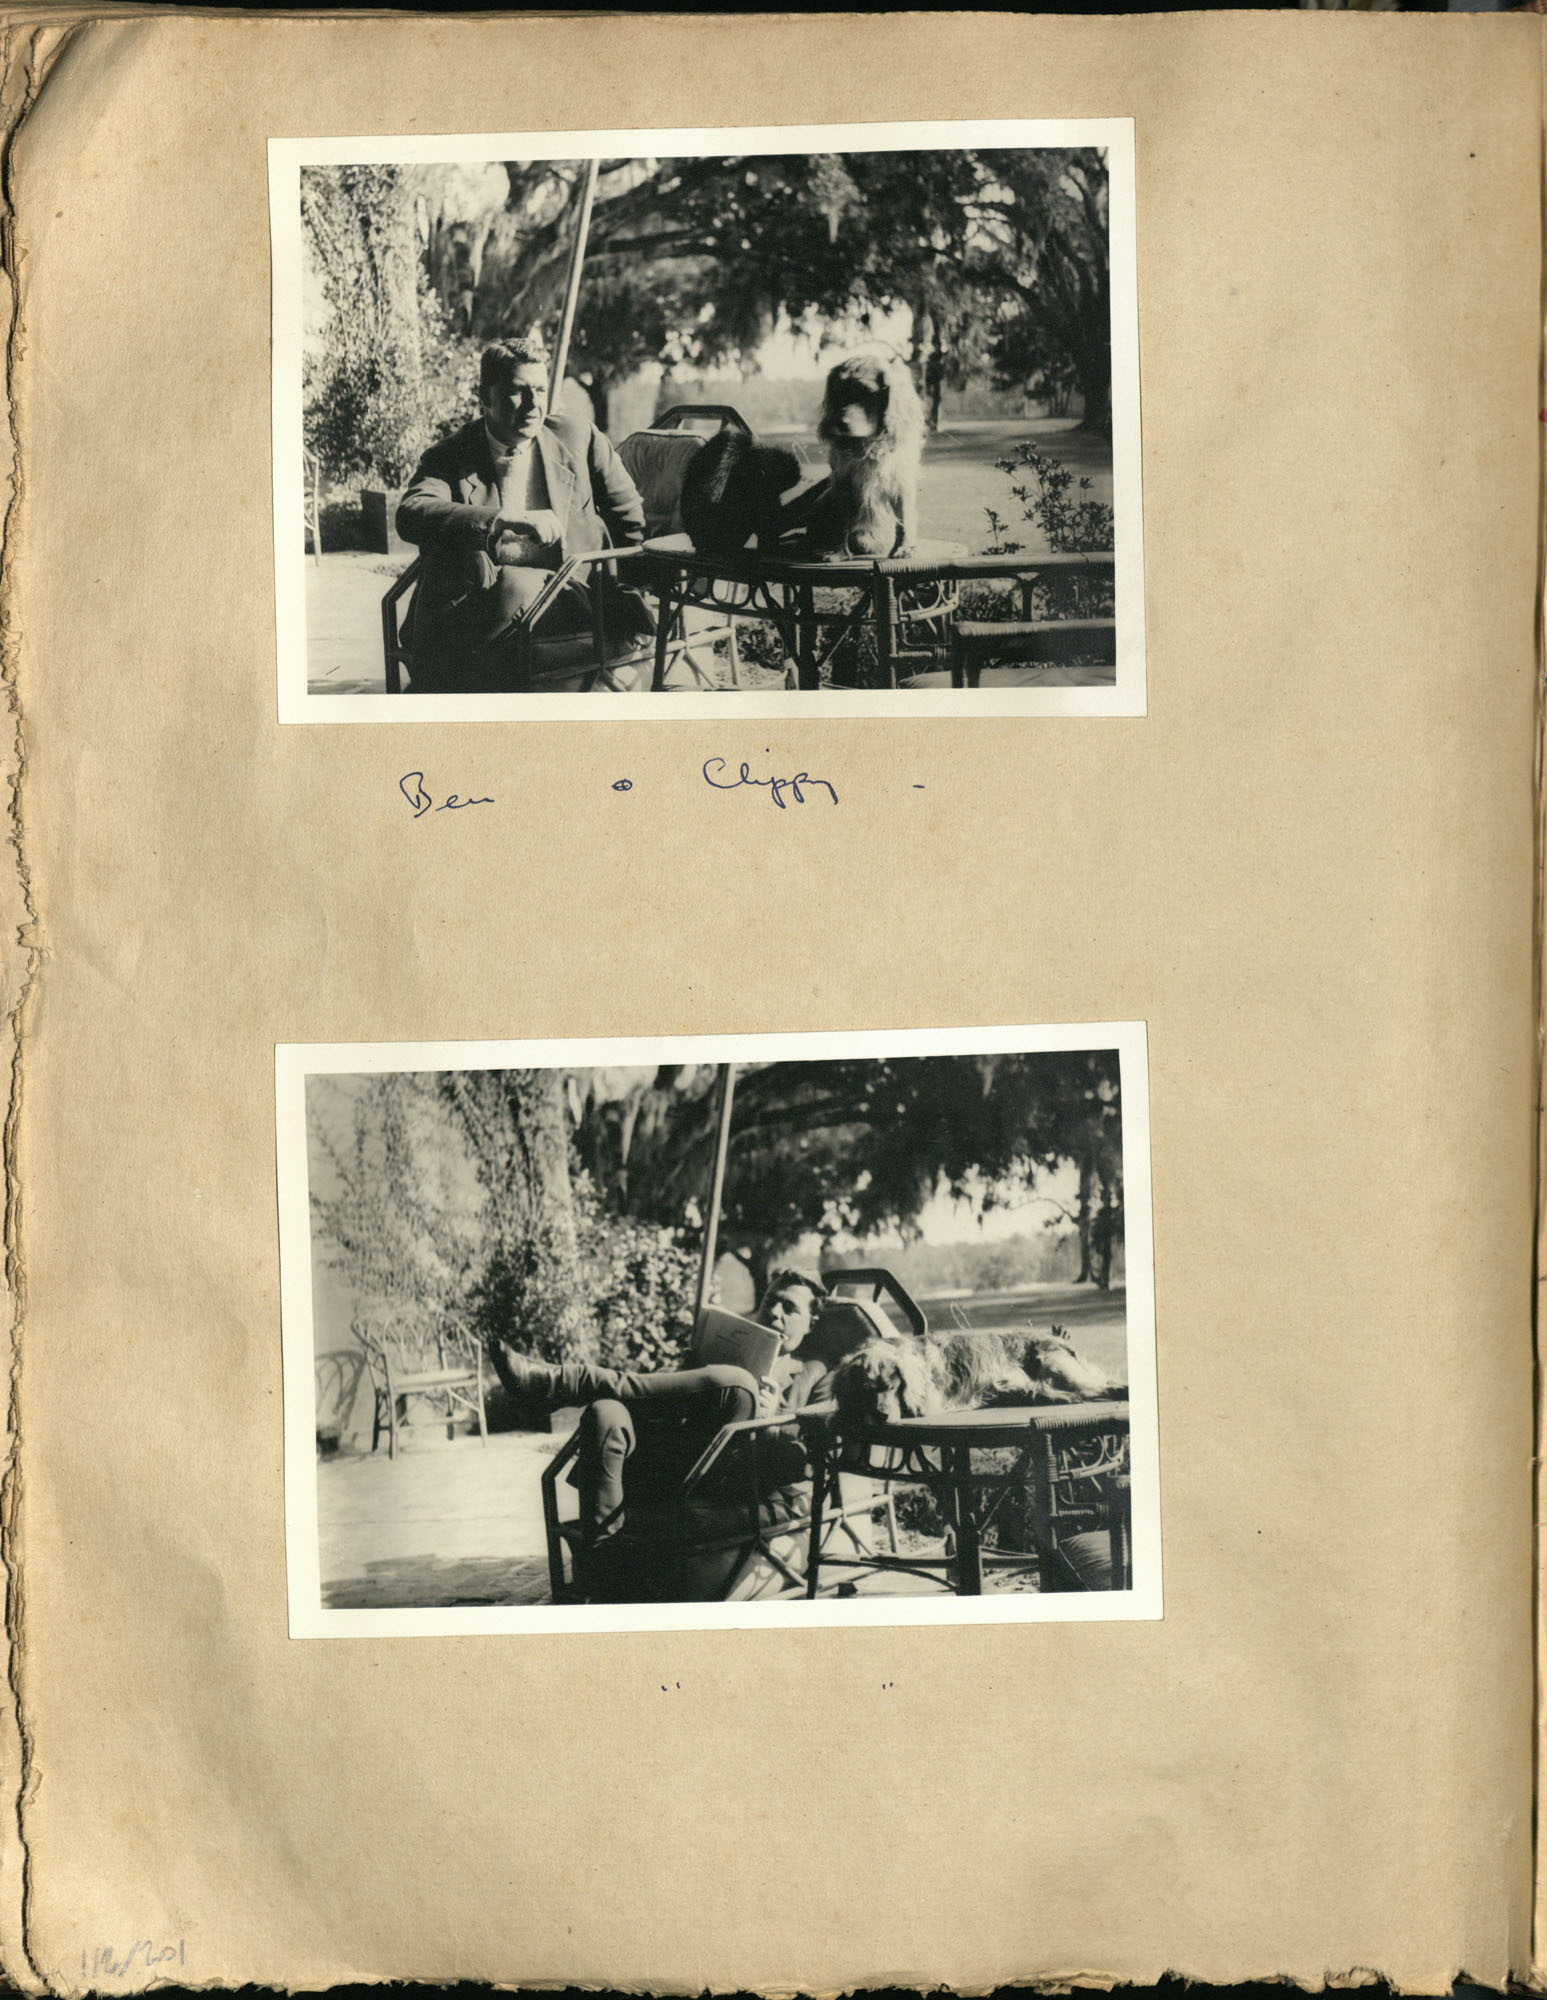 Early Medway and travels album, 1929-1937, page 112